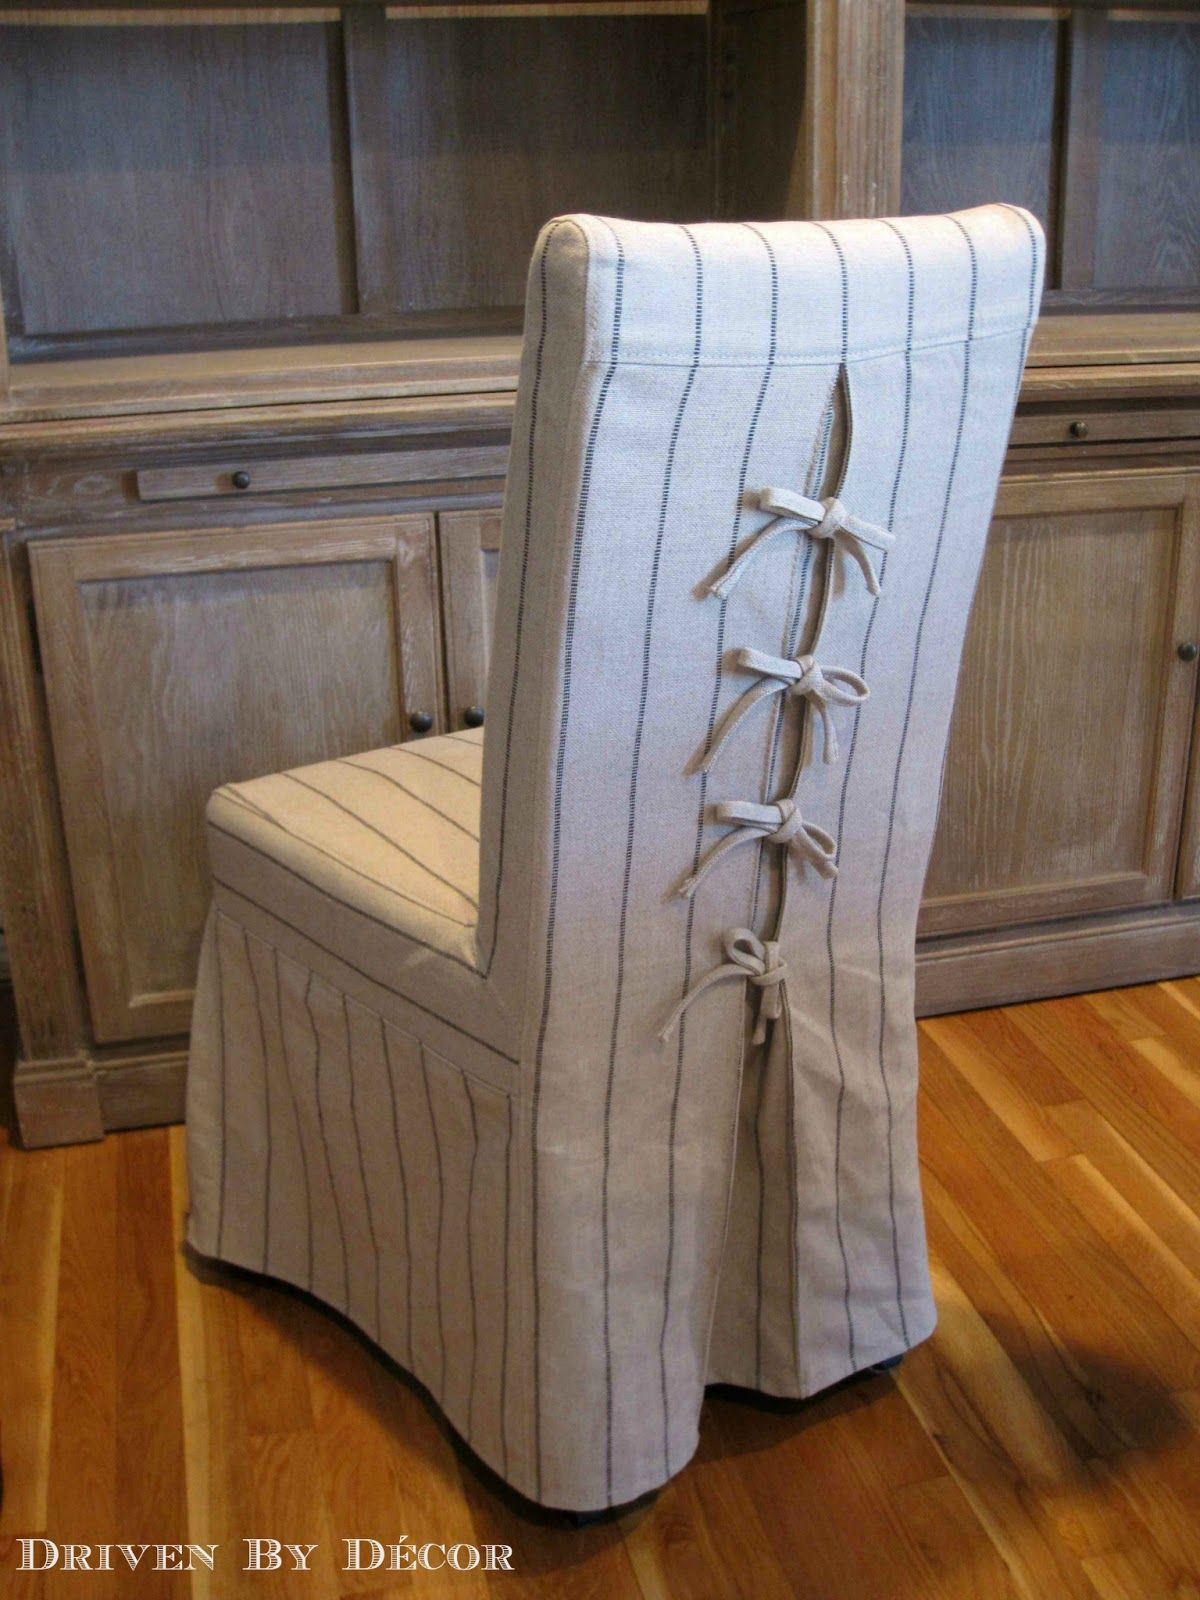 parsons chairs with skirt office for sale slipcovers dining zef jam tie back and corseted a fun way to dress up plain white slipcovered room in